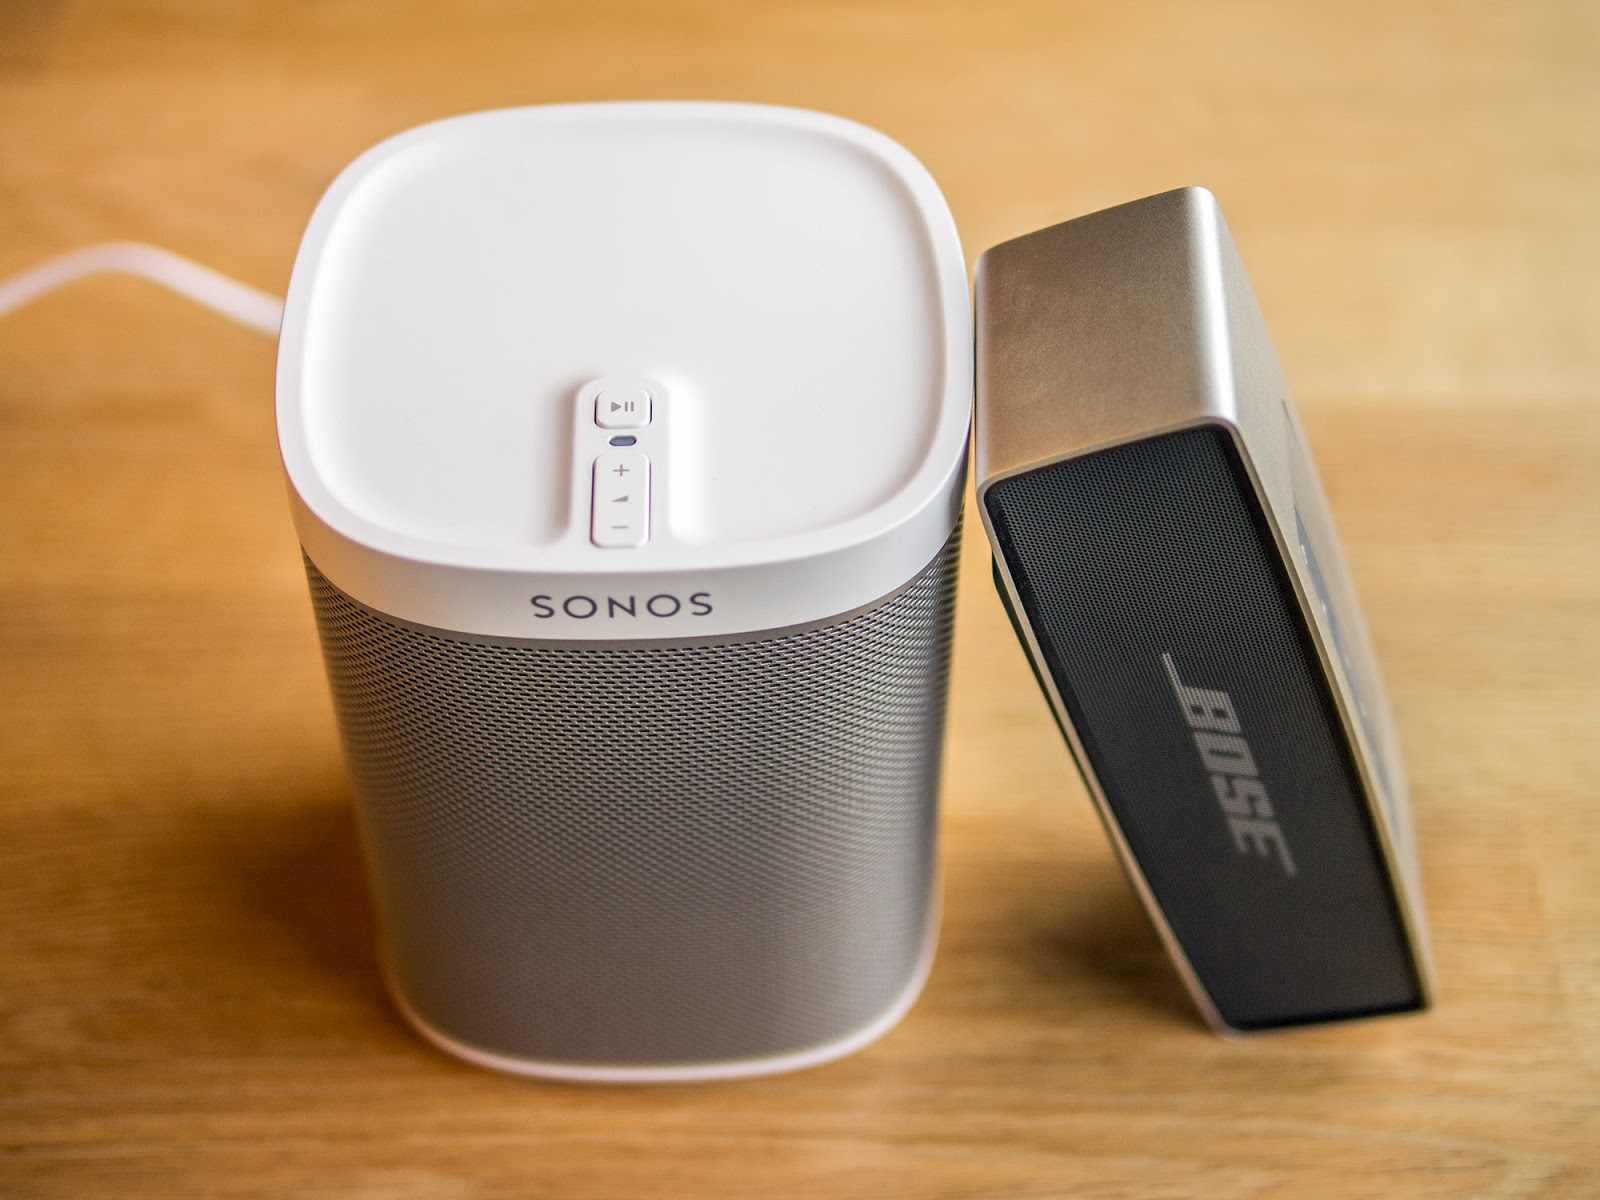 oluv 39 s gadgets review sonos play 1 smallest yet best. Black Bedroom Furniture Sets. Home Design Ideas